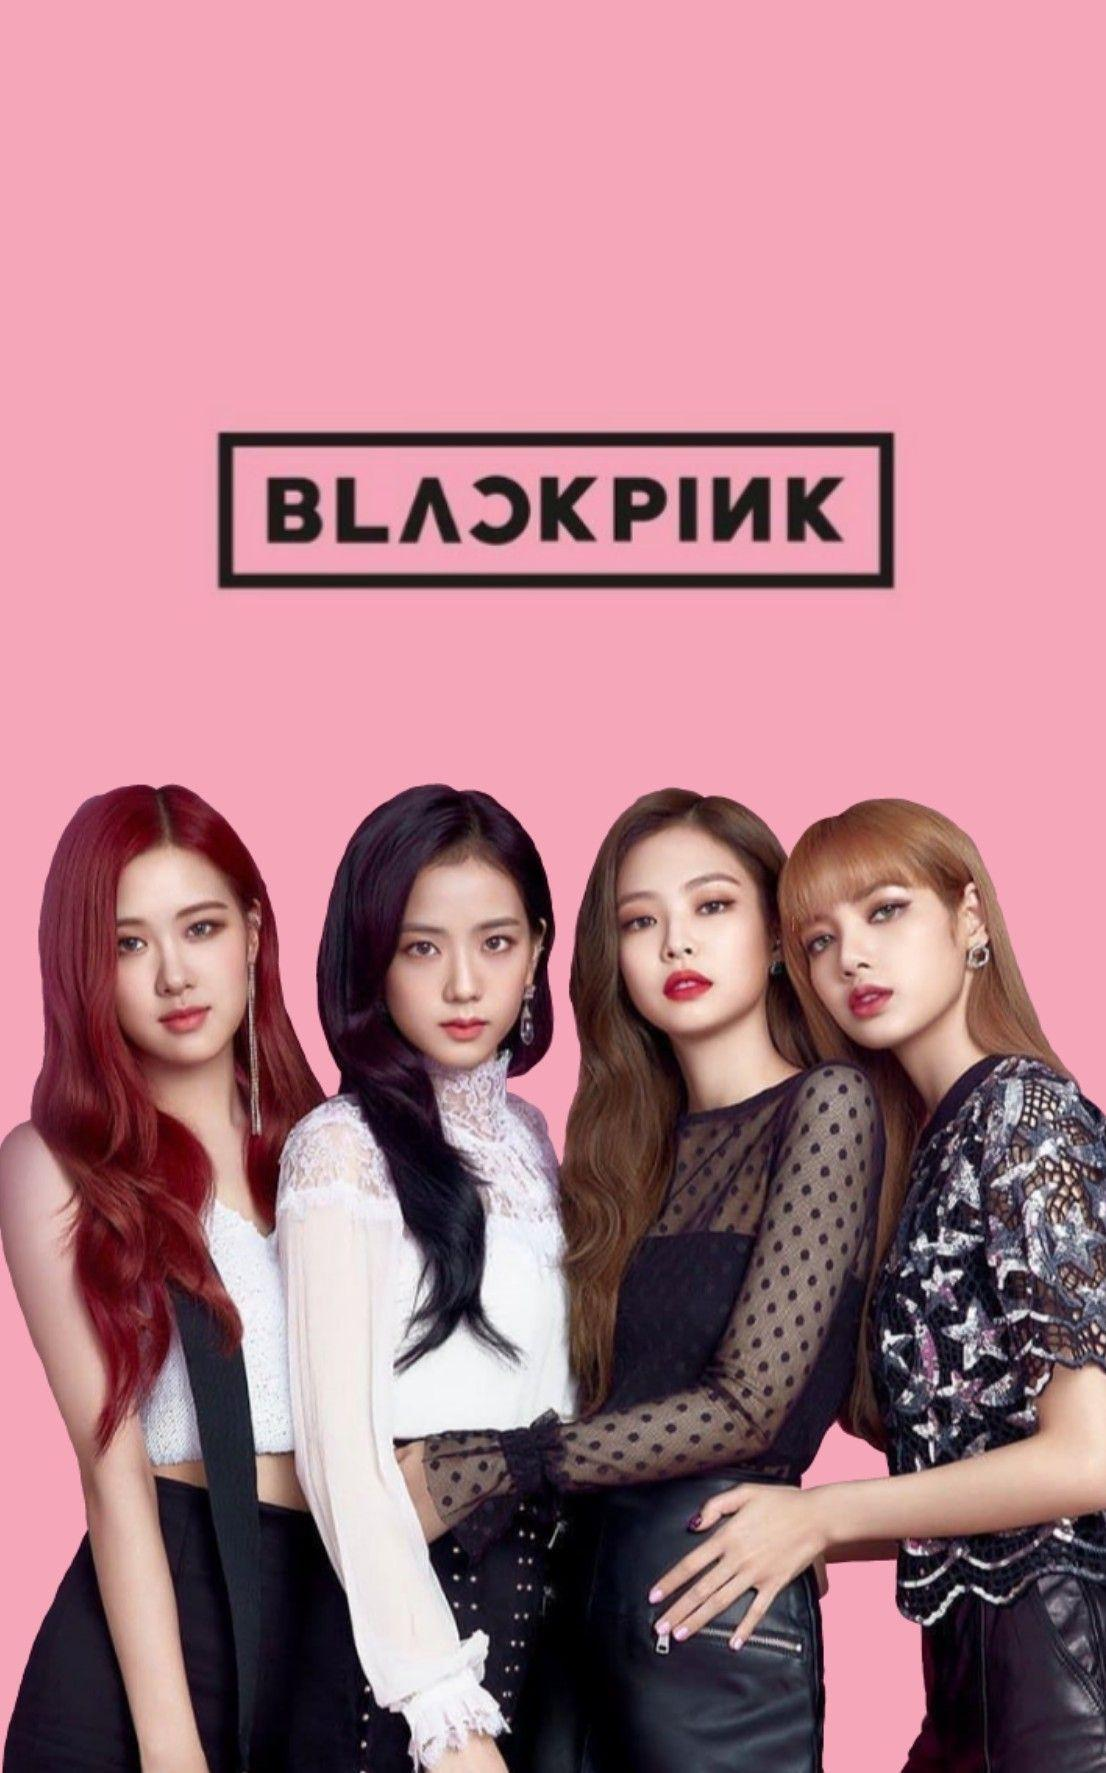 Blackpink How You Like That Wallpapers - Wallpaper Cave